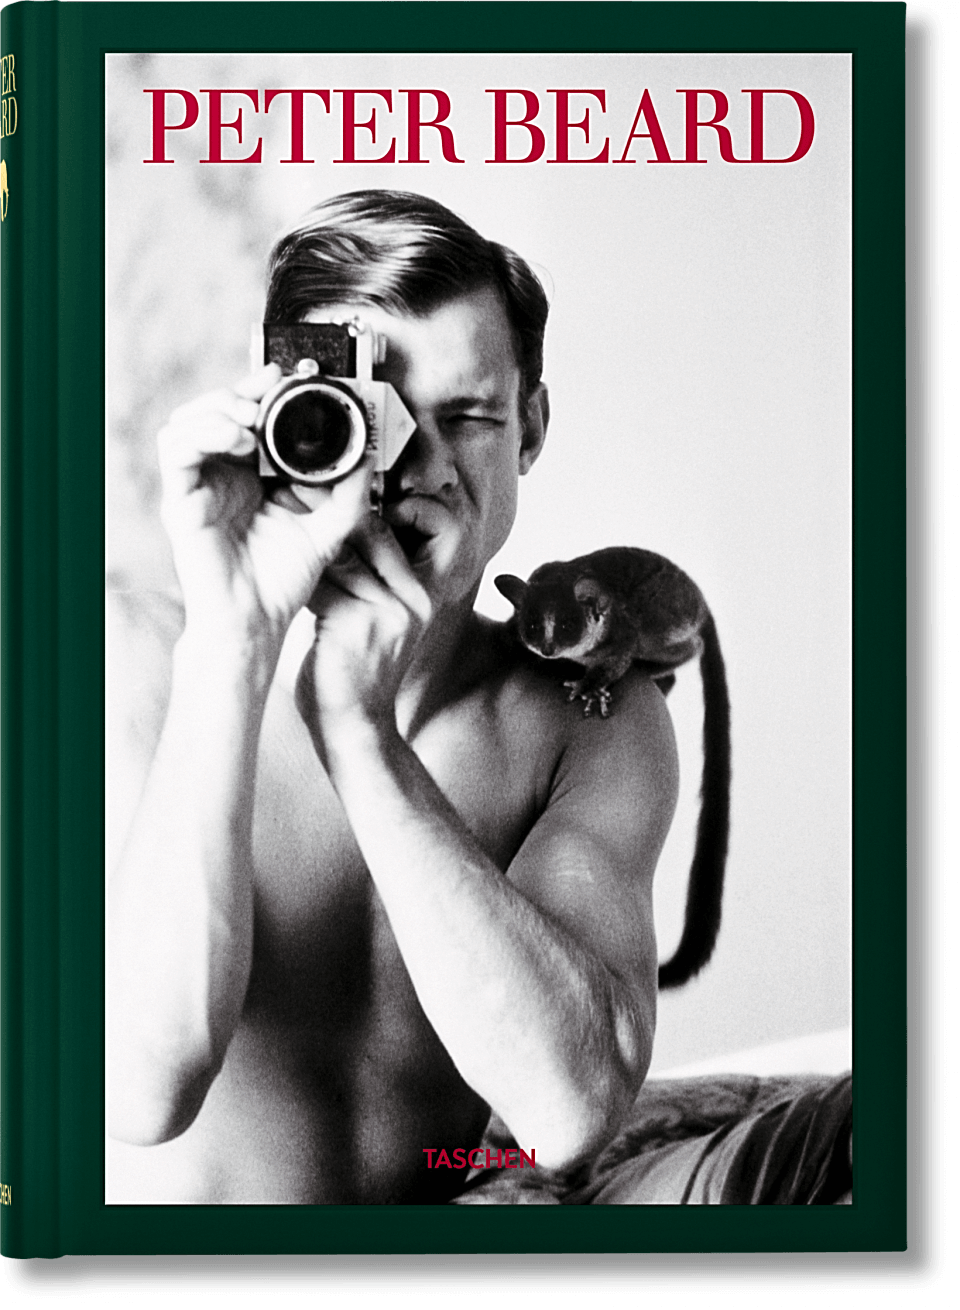 Peter Beard, Into The Wild, Book, Taschen, art gallery, La Maison Rebelle, fine art, photography, los angeles